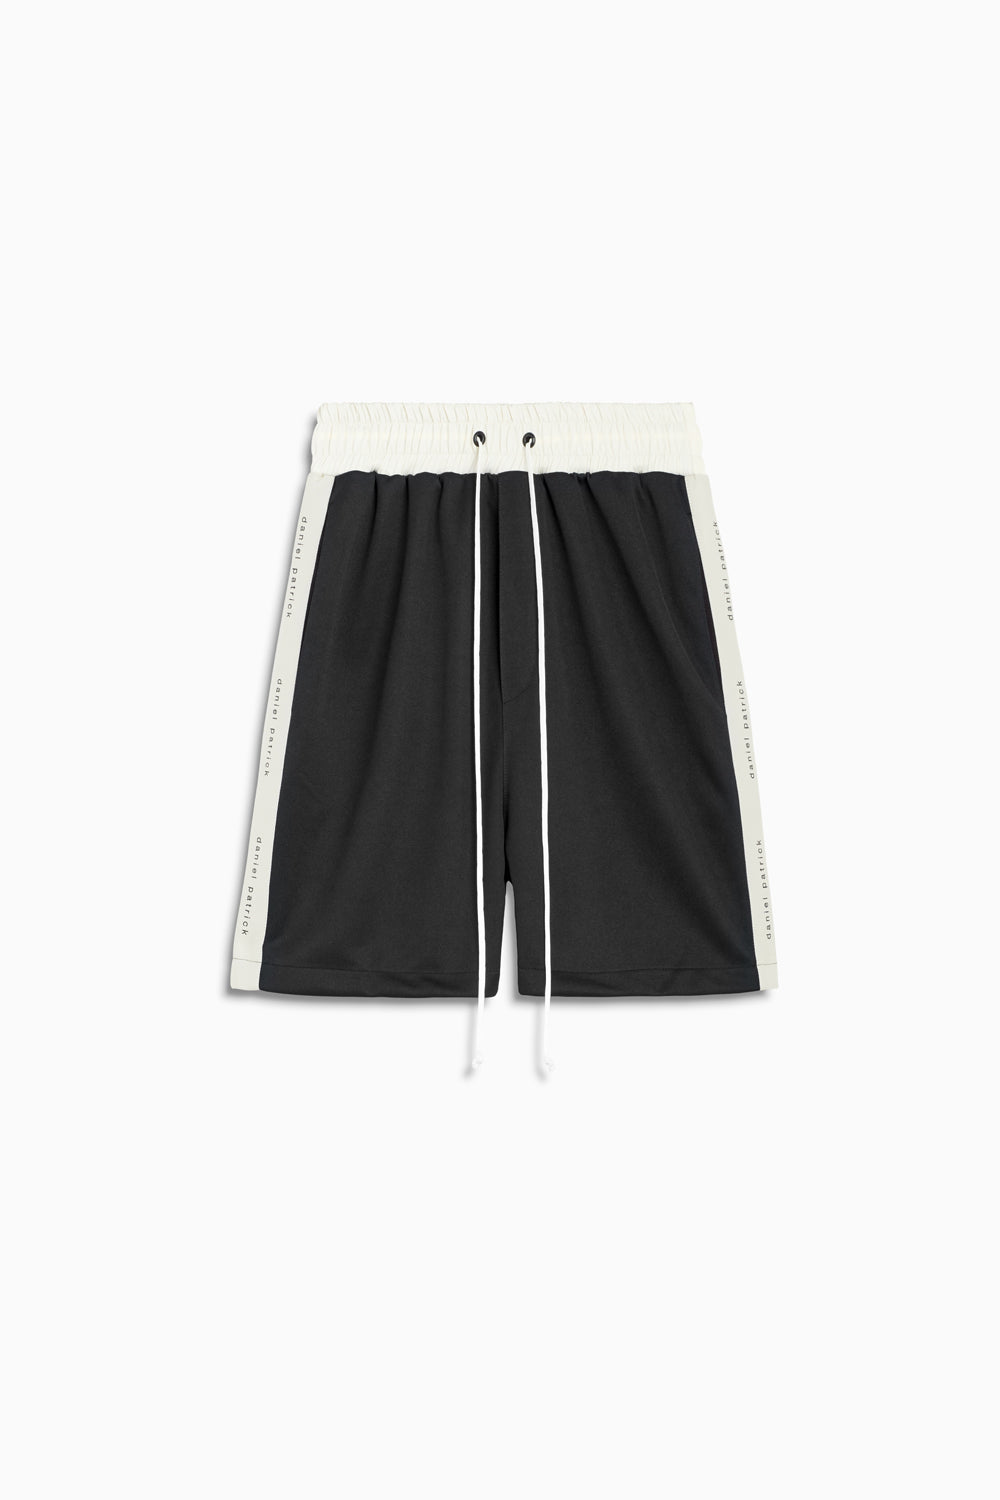 roaming gym short in black/ivory by daniel patrick